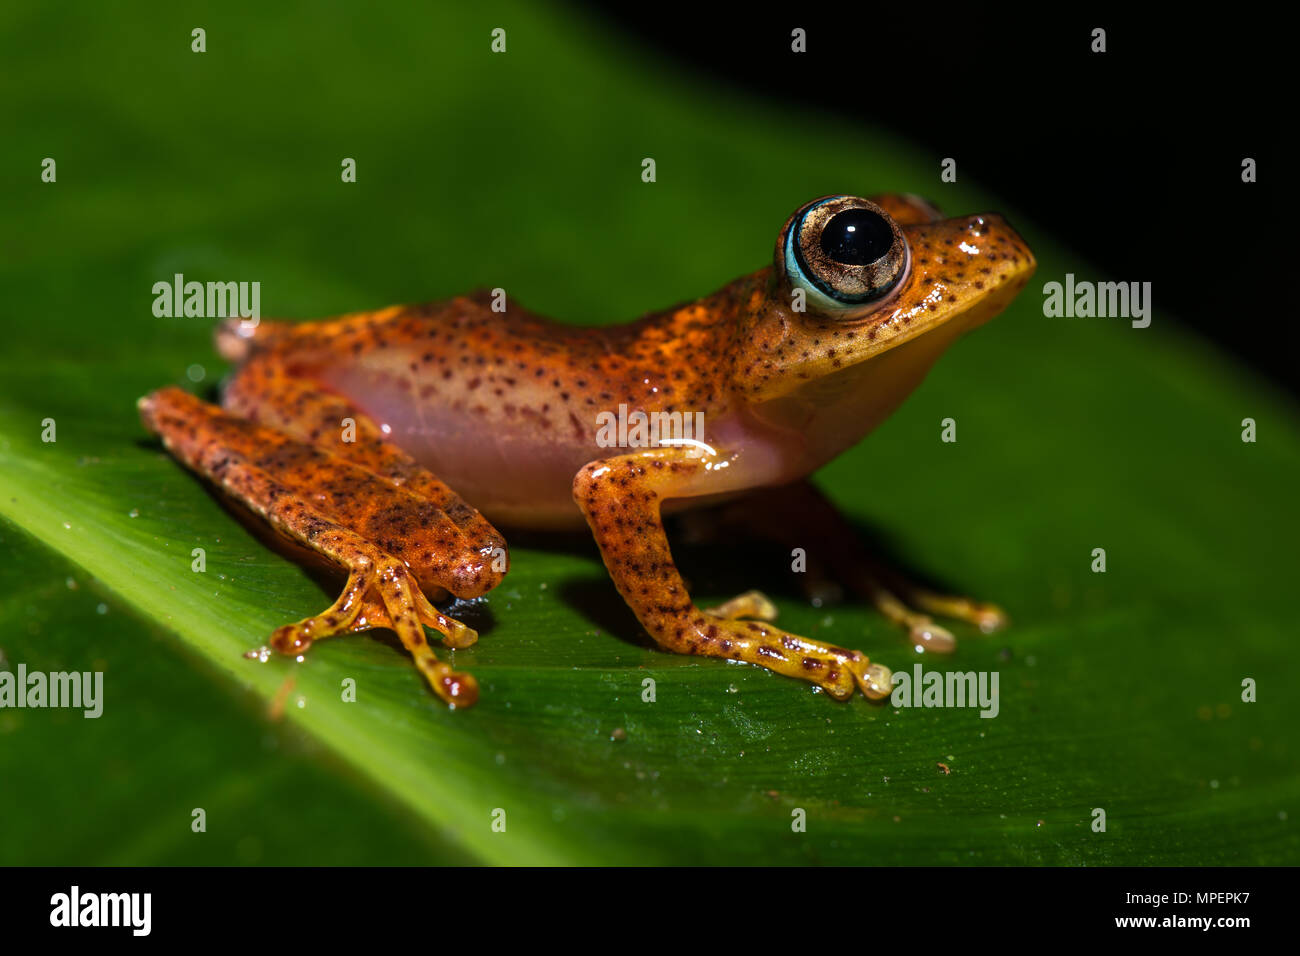 Tree climbing frog species (Boophis pyrrhus) sits on leaf, Andasibe National Park, Madagascar - Stock Image